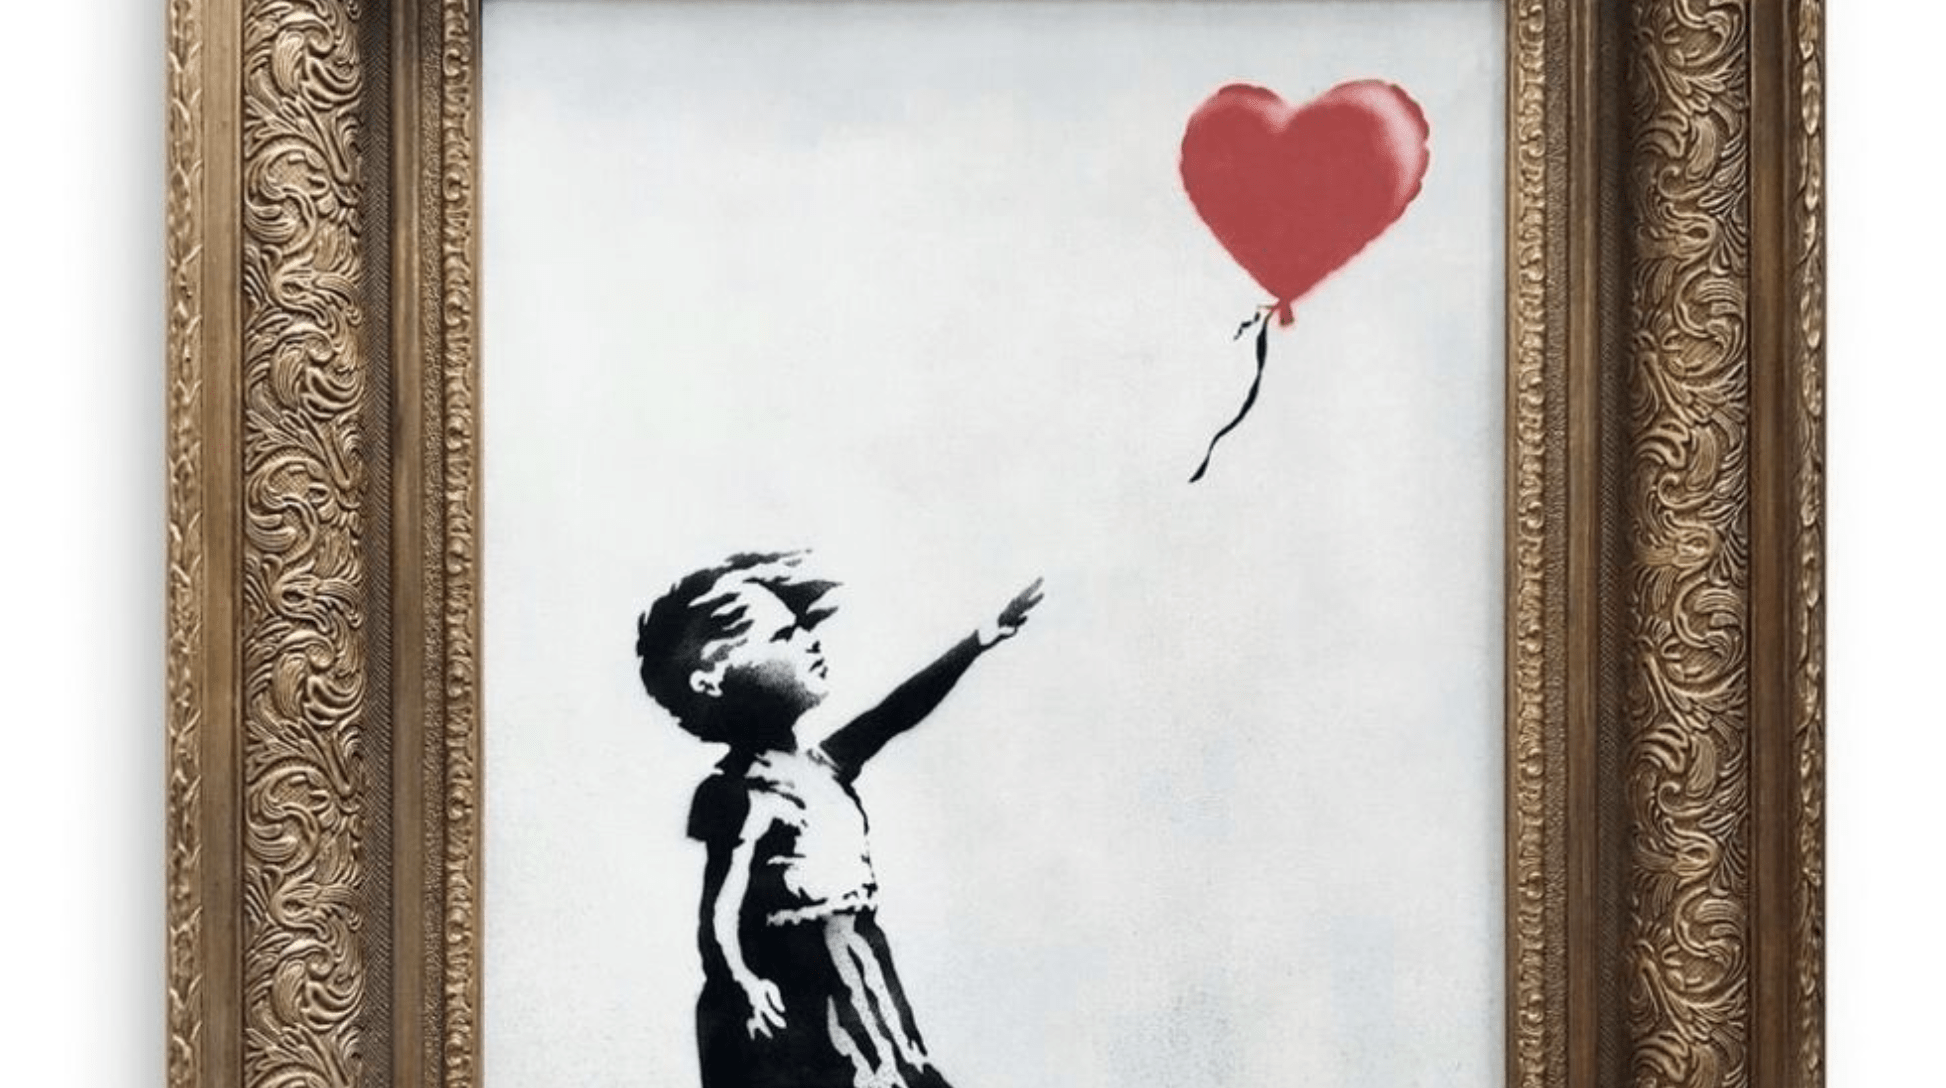 Banksky dream baloon heart.png